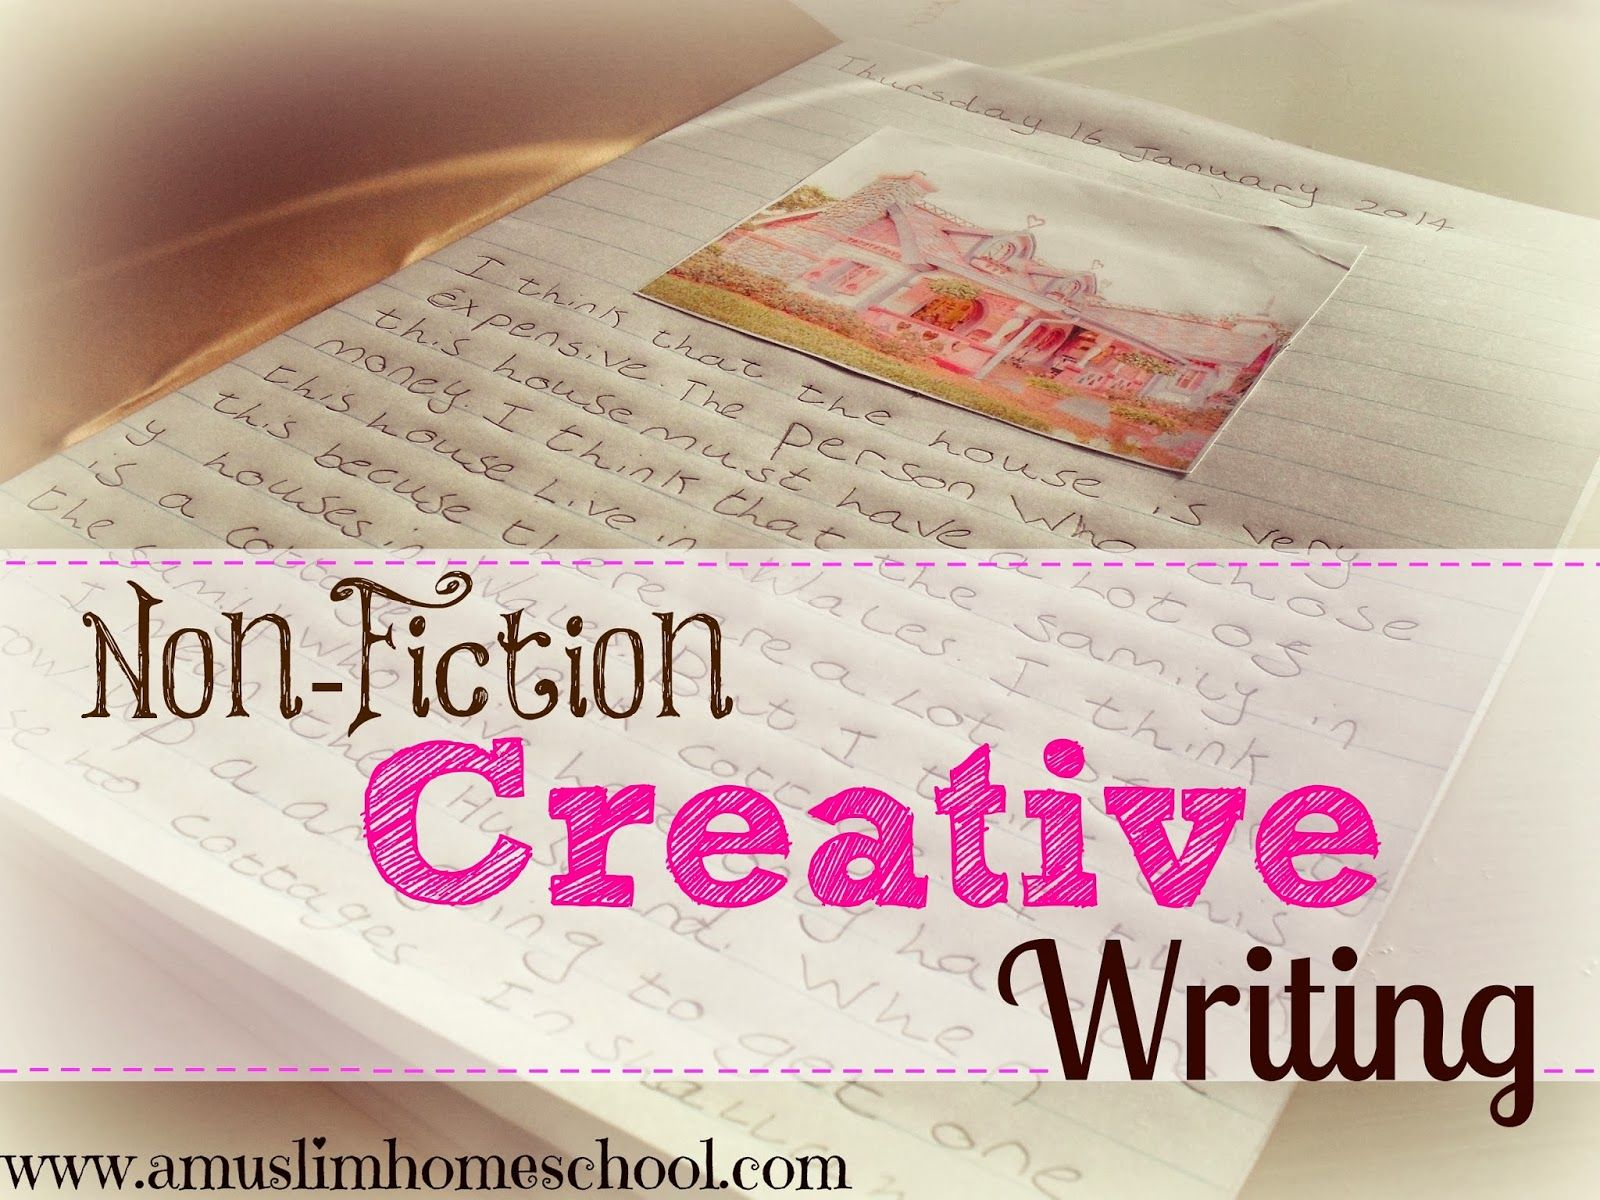 tips for writing creative nonfiction Lee kofman: author author, creative writing mentor & teacher my top 7 tips for writing creative nonfiction here are my top tips writing is reading.